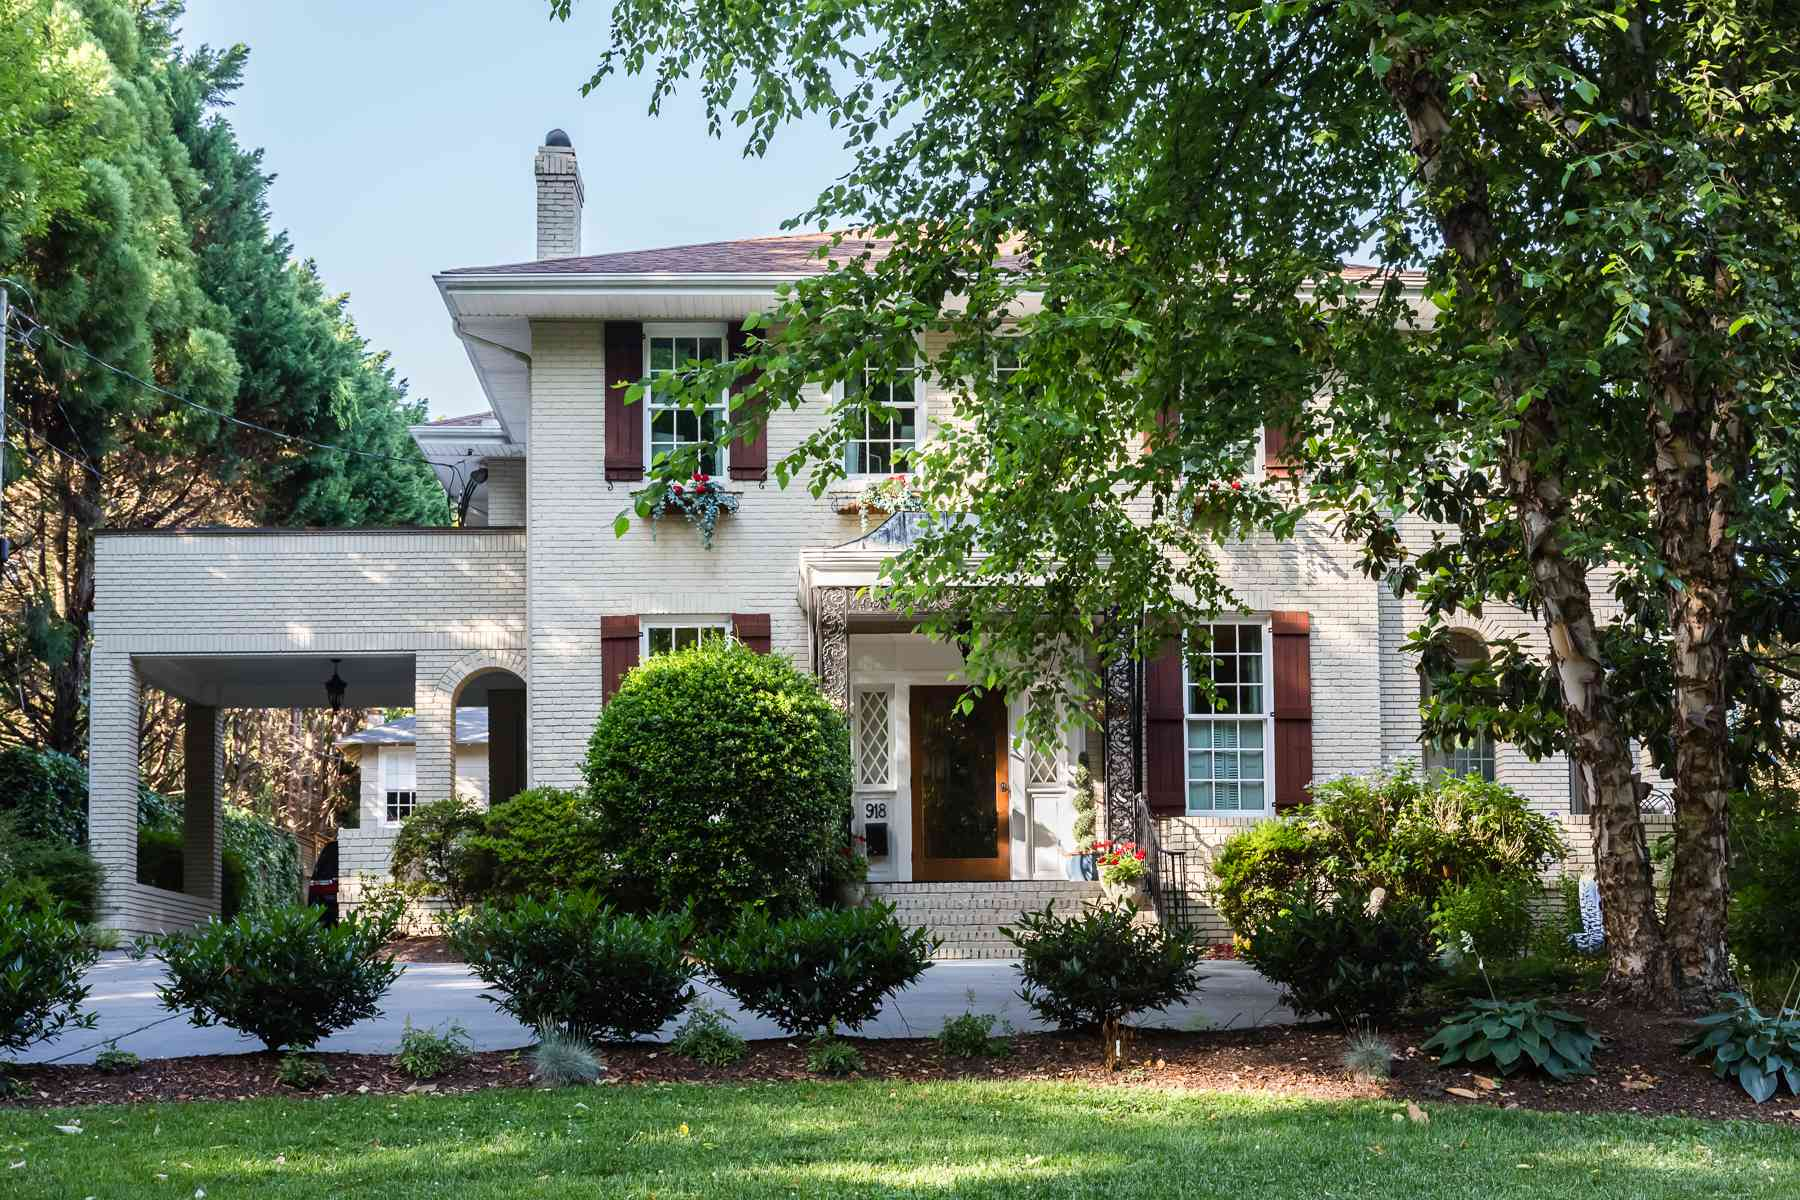 Classic Colonial Spanish Home with exterior arches